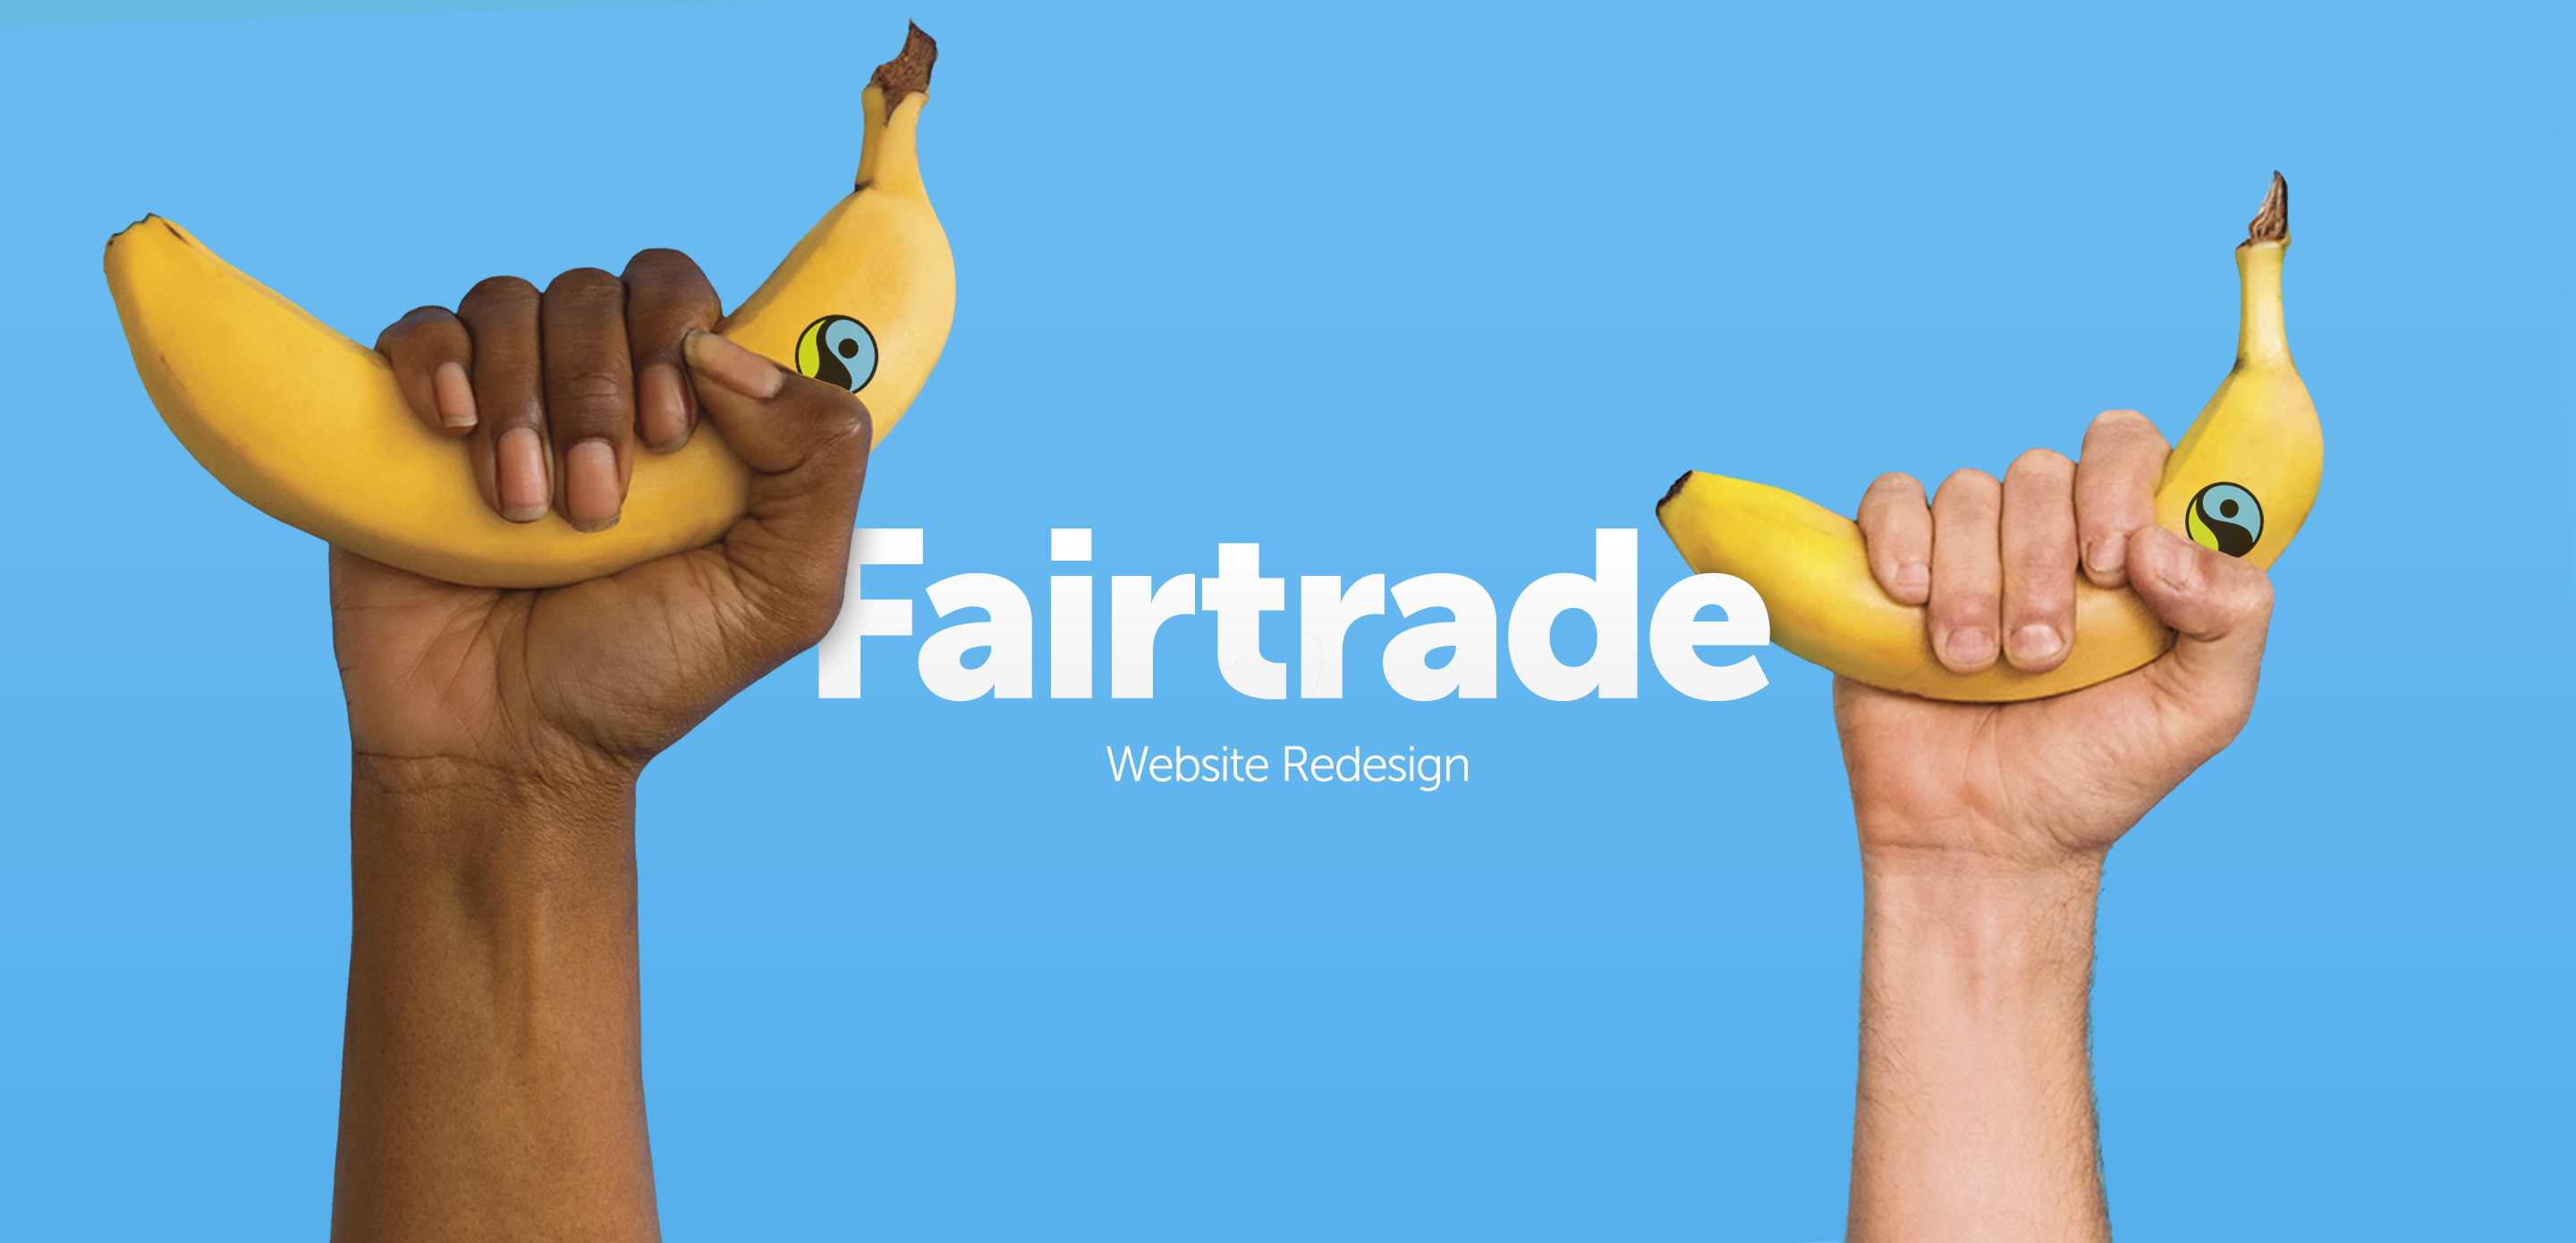 fairtrade-cover